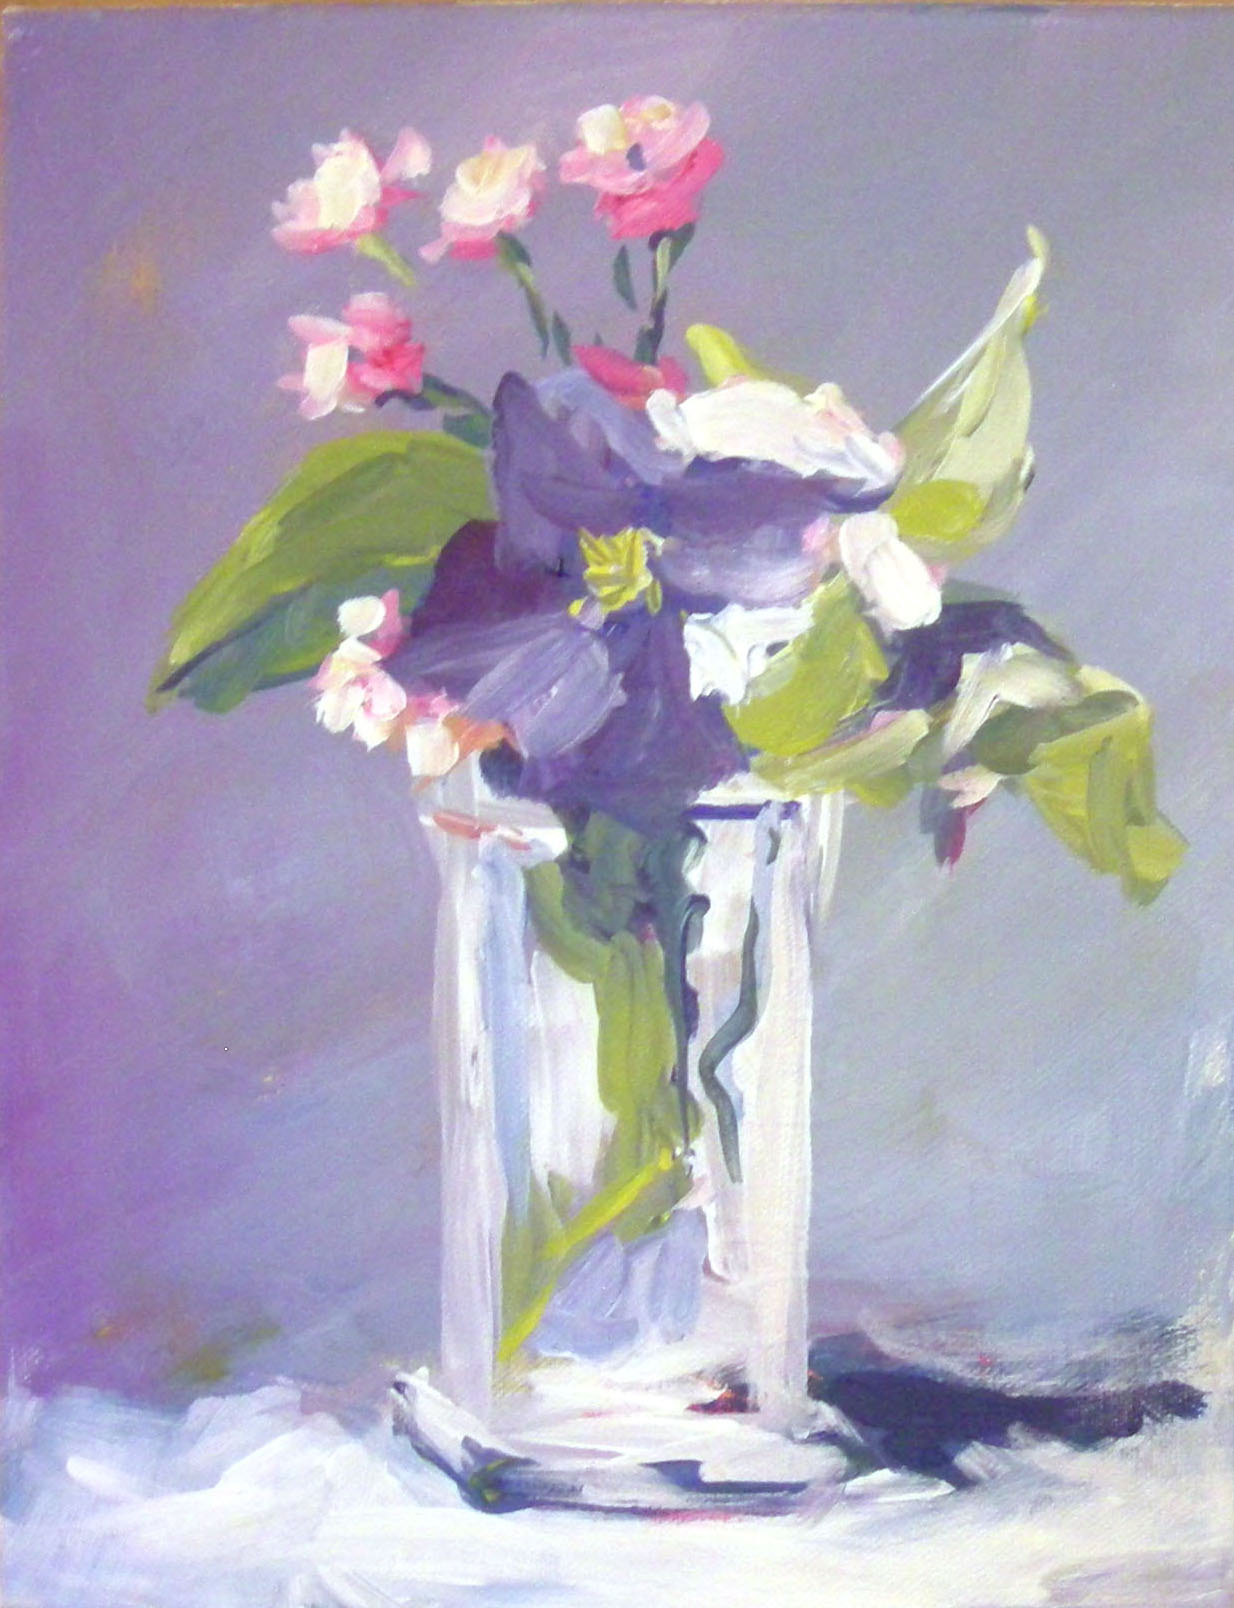 Manet's Flowers | Illustrations and Paintings | Pinterest ... |Manet Flowers